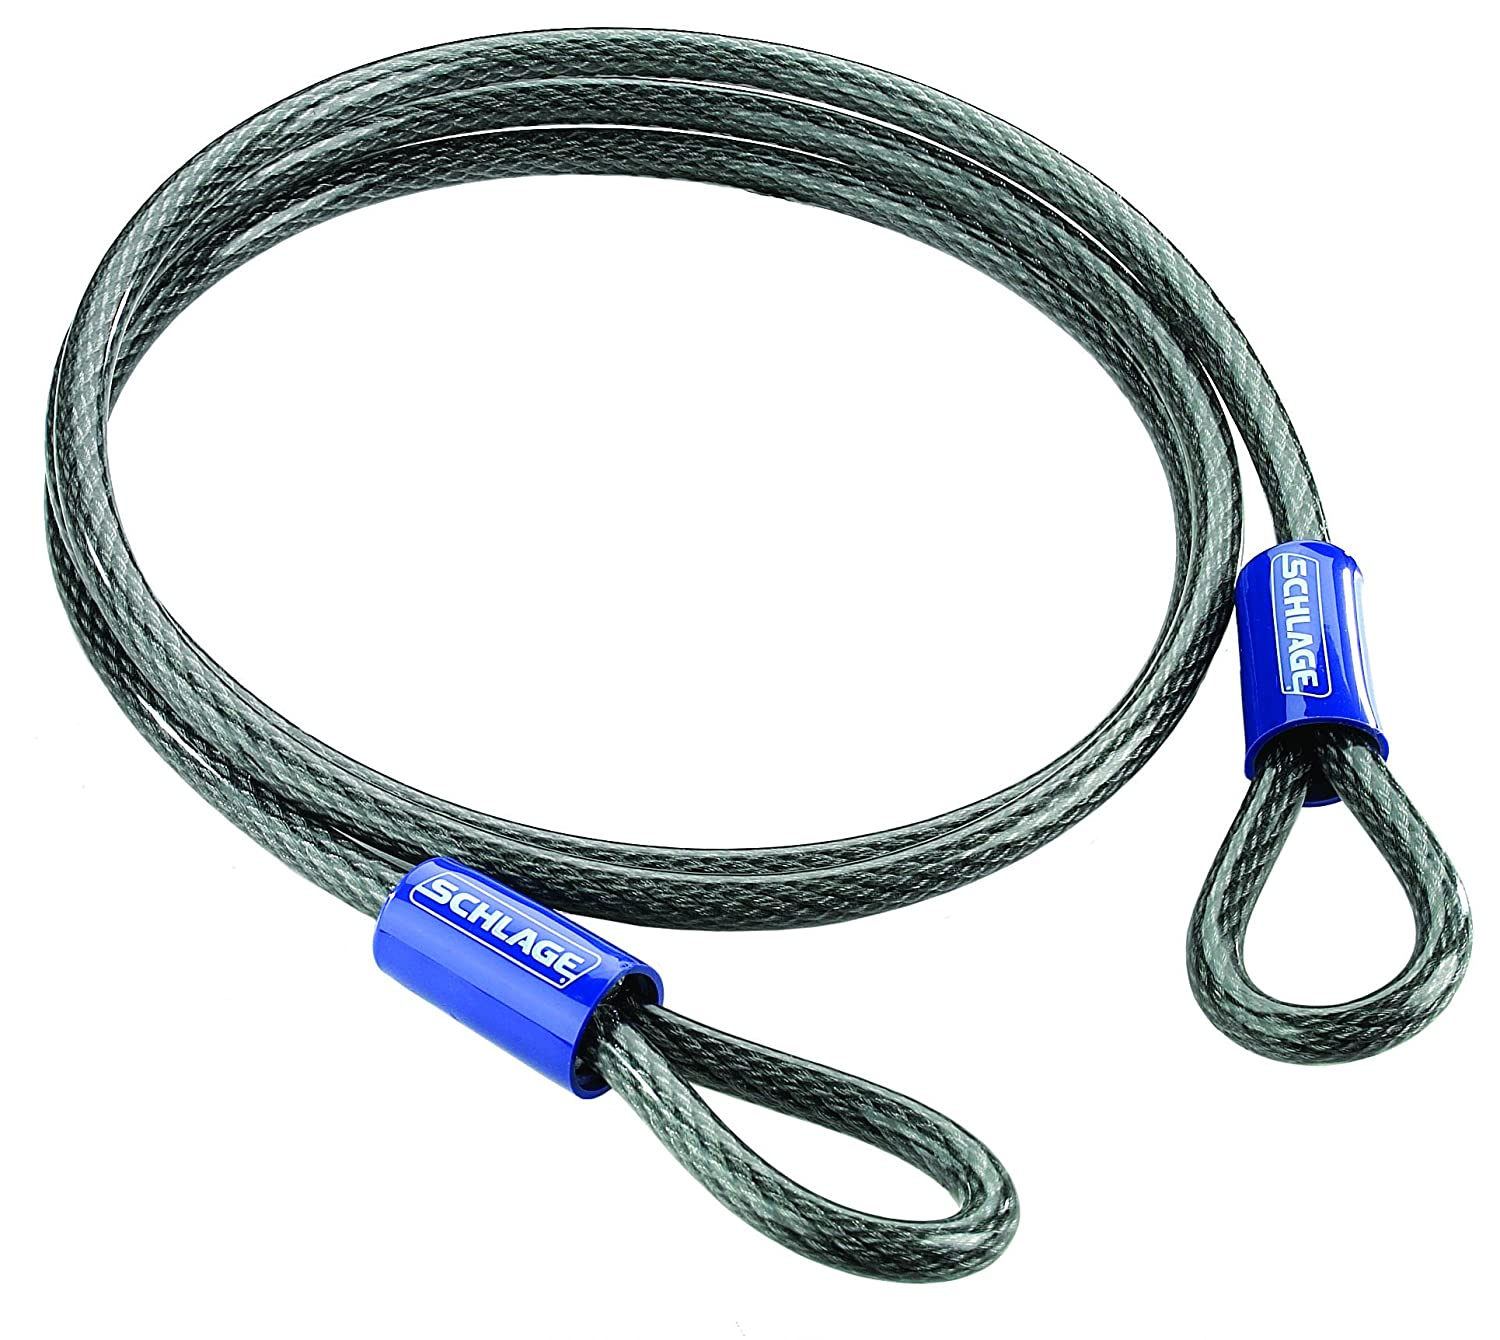 Schlage 999256 Flexible Steel Cable, 7-Foot by 0.375-Inch